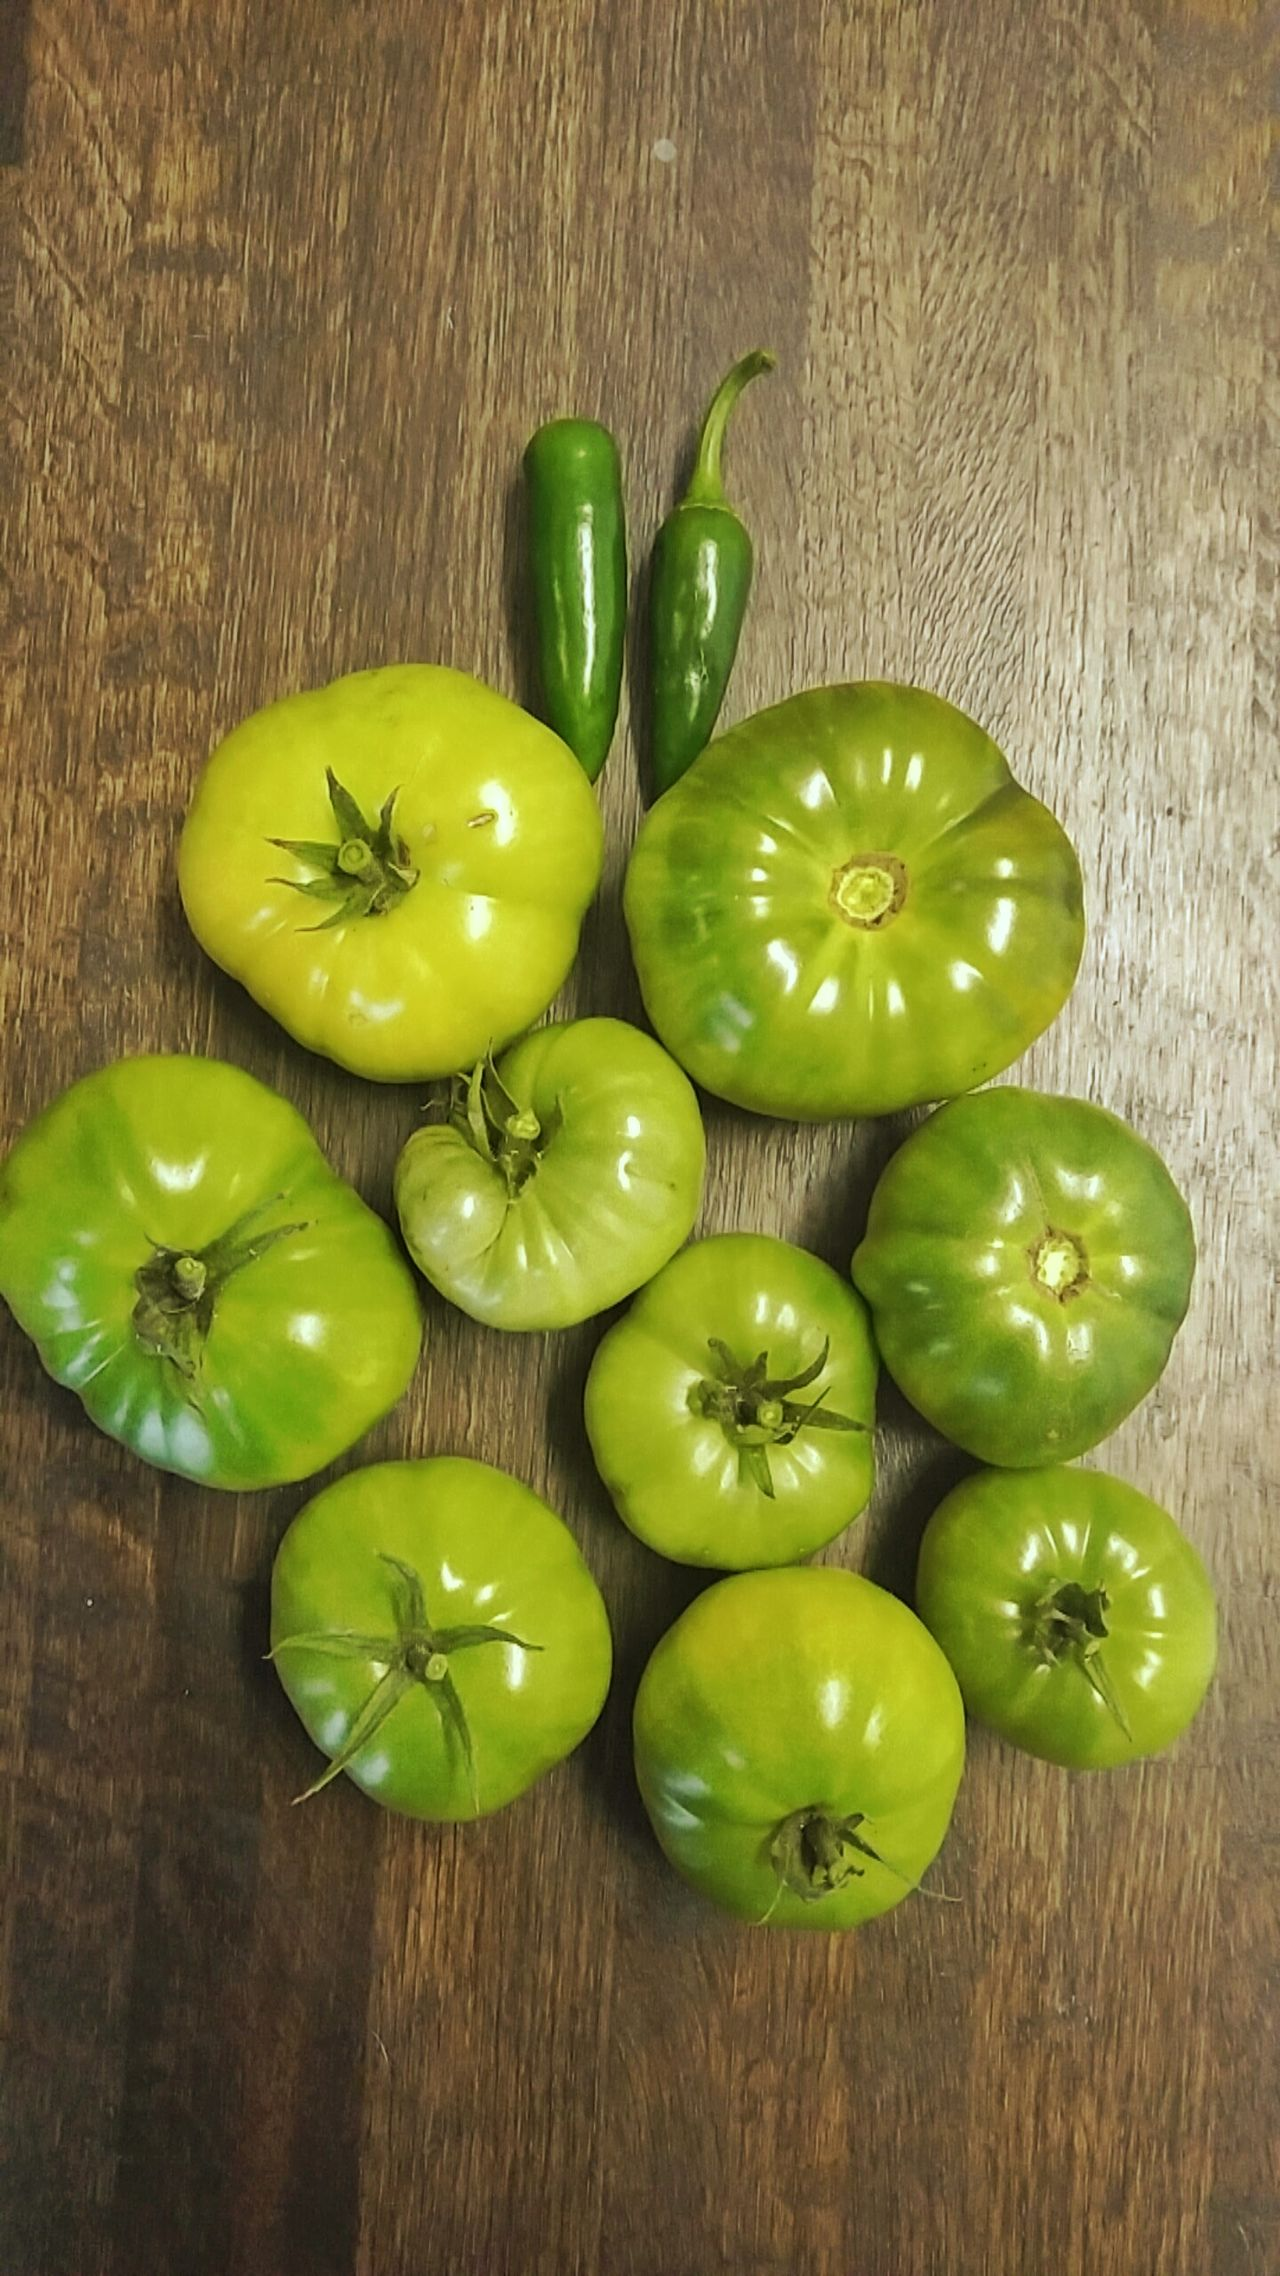 Freshness Food And Drink No People Green Color Fruit Healthy Eating Food Indoors  Close-up Day Tomato Tomatoes Green Tomatoes Green Tomato Green Garden Farm Butcherblock Kitchen Kitchen Counter Farm Fresh Garden Fresh Green Food Peppers Green Peppers